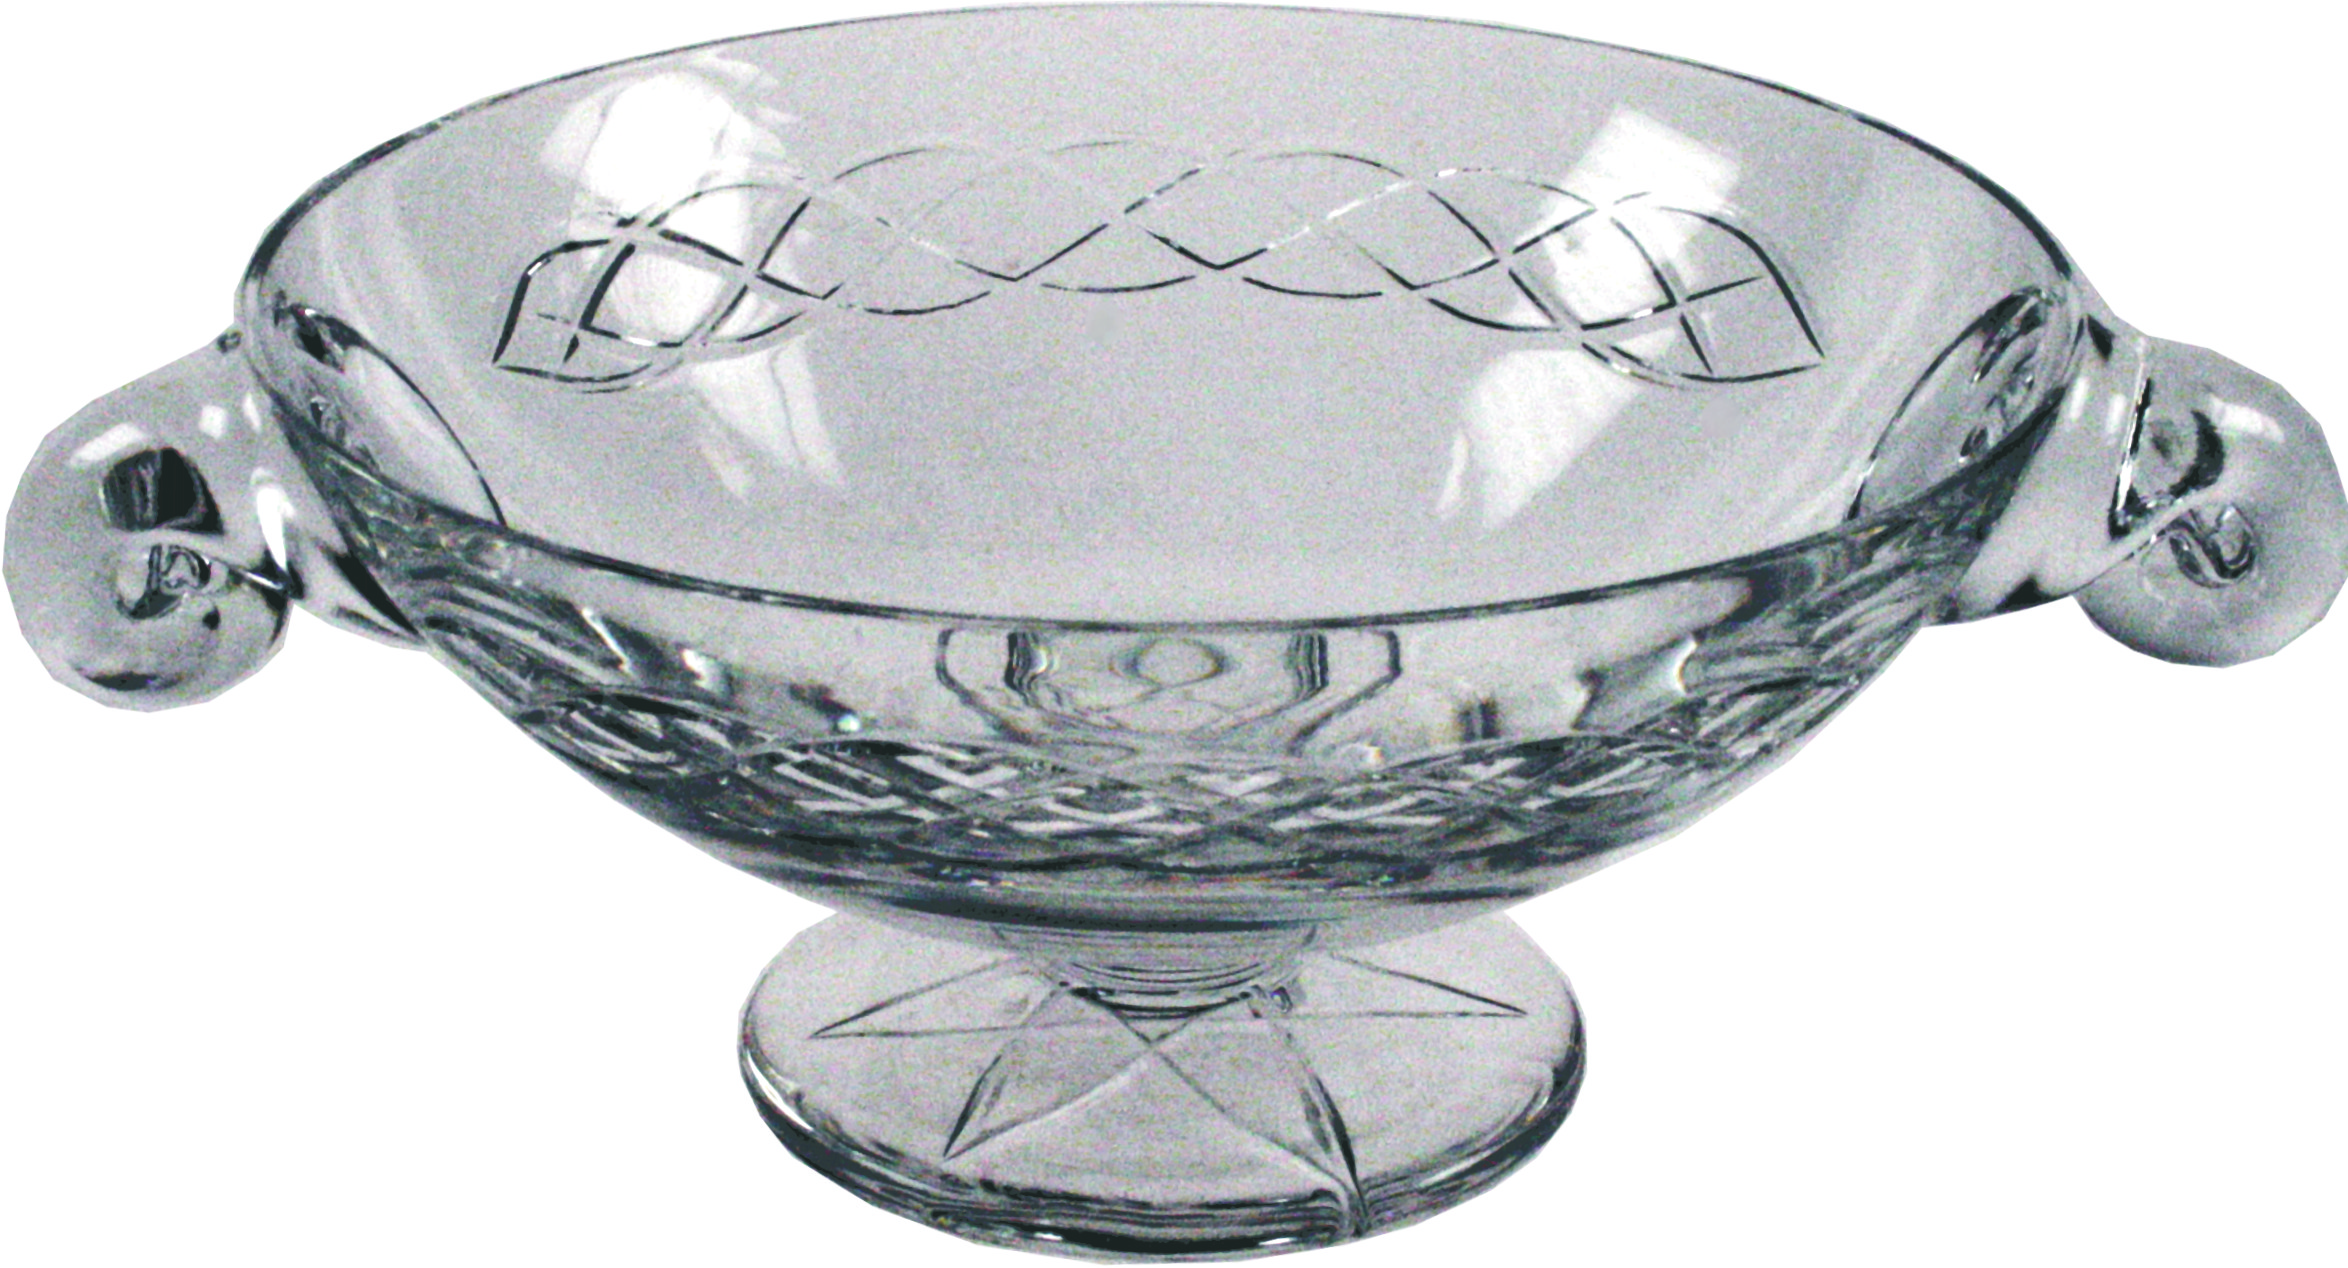 "Crystal Glass Quaich Bowl with Celtic design 20cm (8"")"